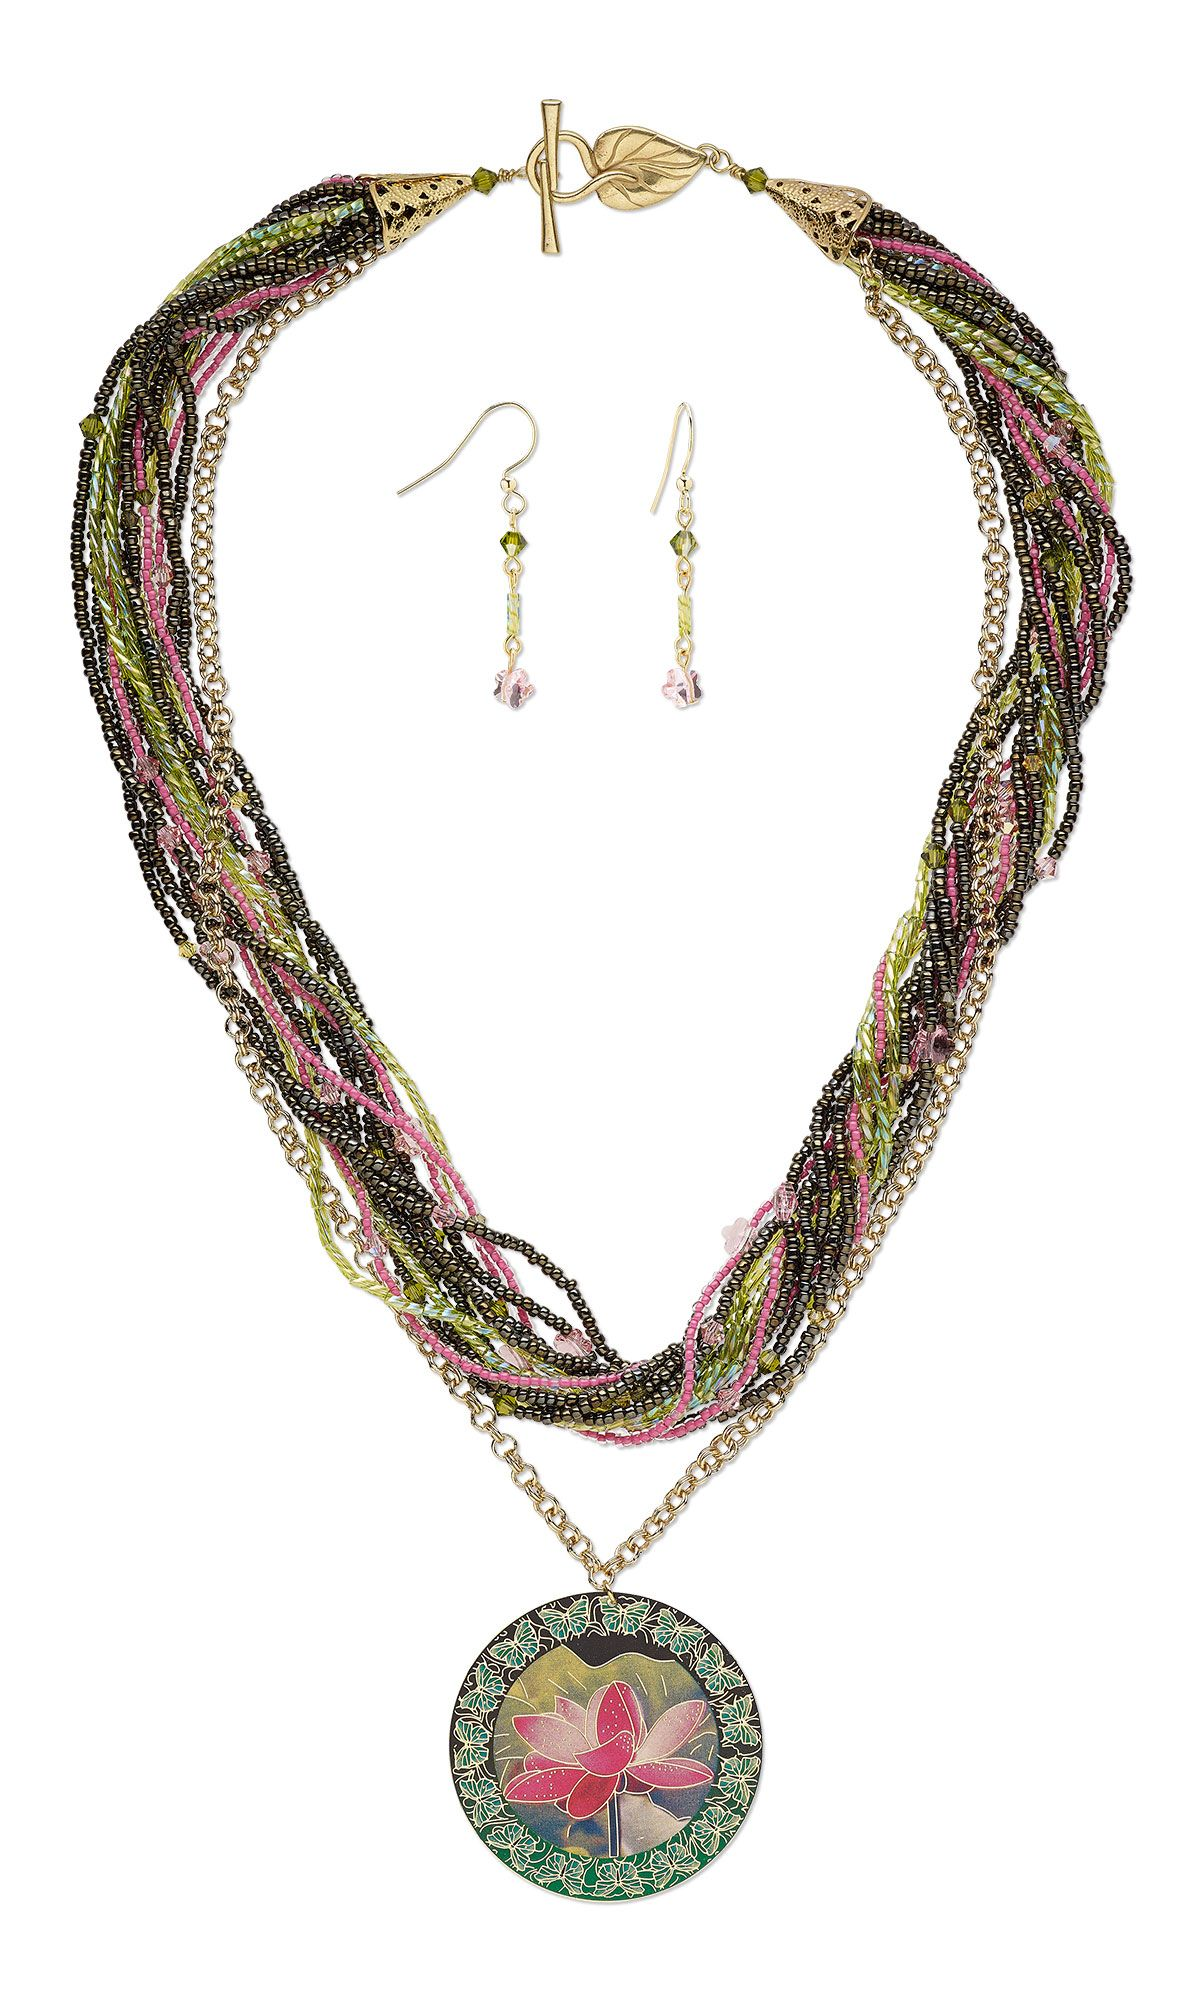 Jewelry design multistrand necklace and earring set with seed